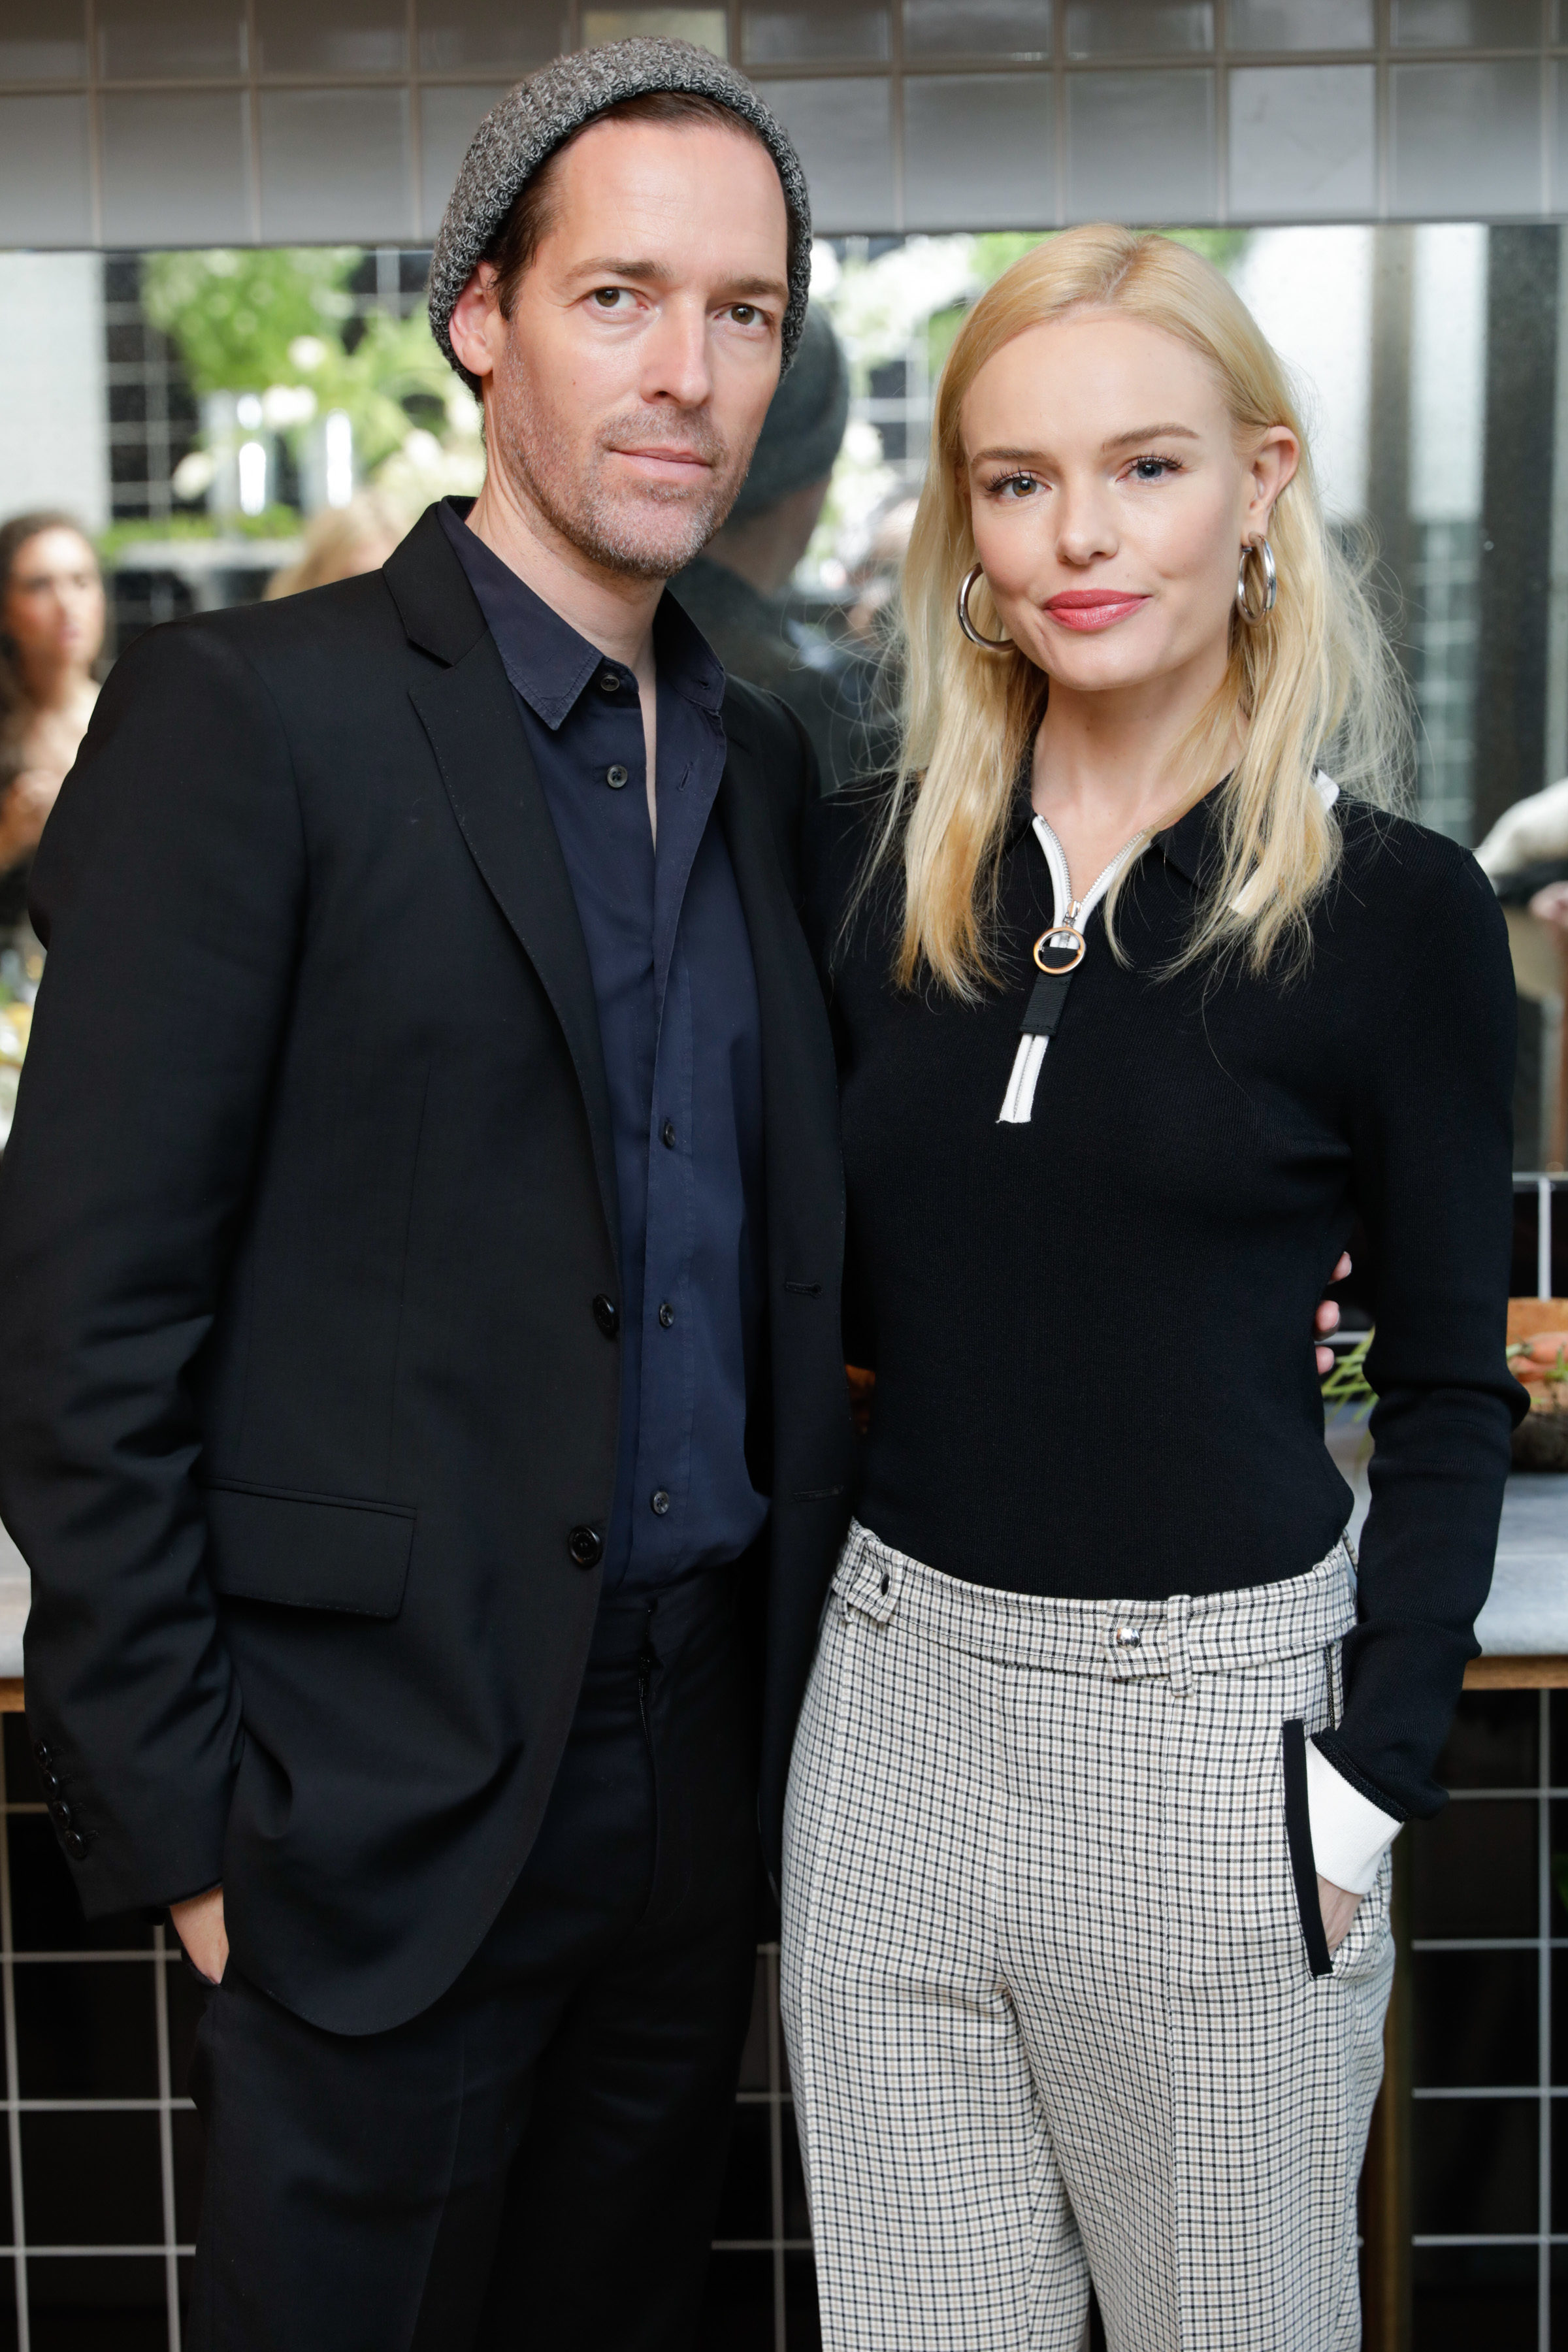 Michael Polish and Kate Bosworth attend the GREY Jason Wu dinner in New York City on June 15, 2017.